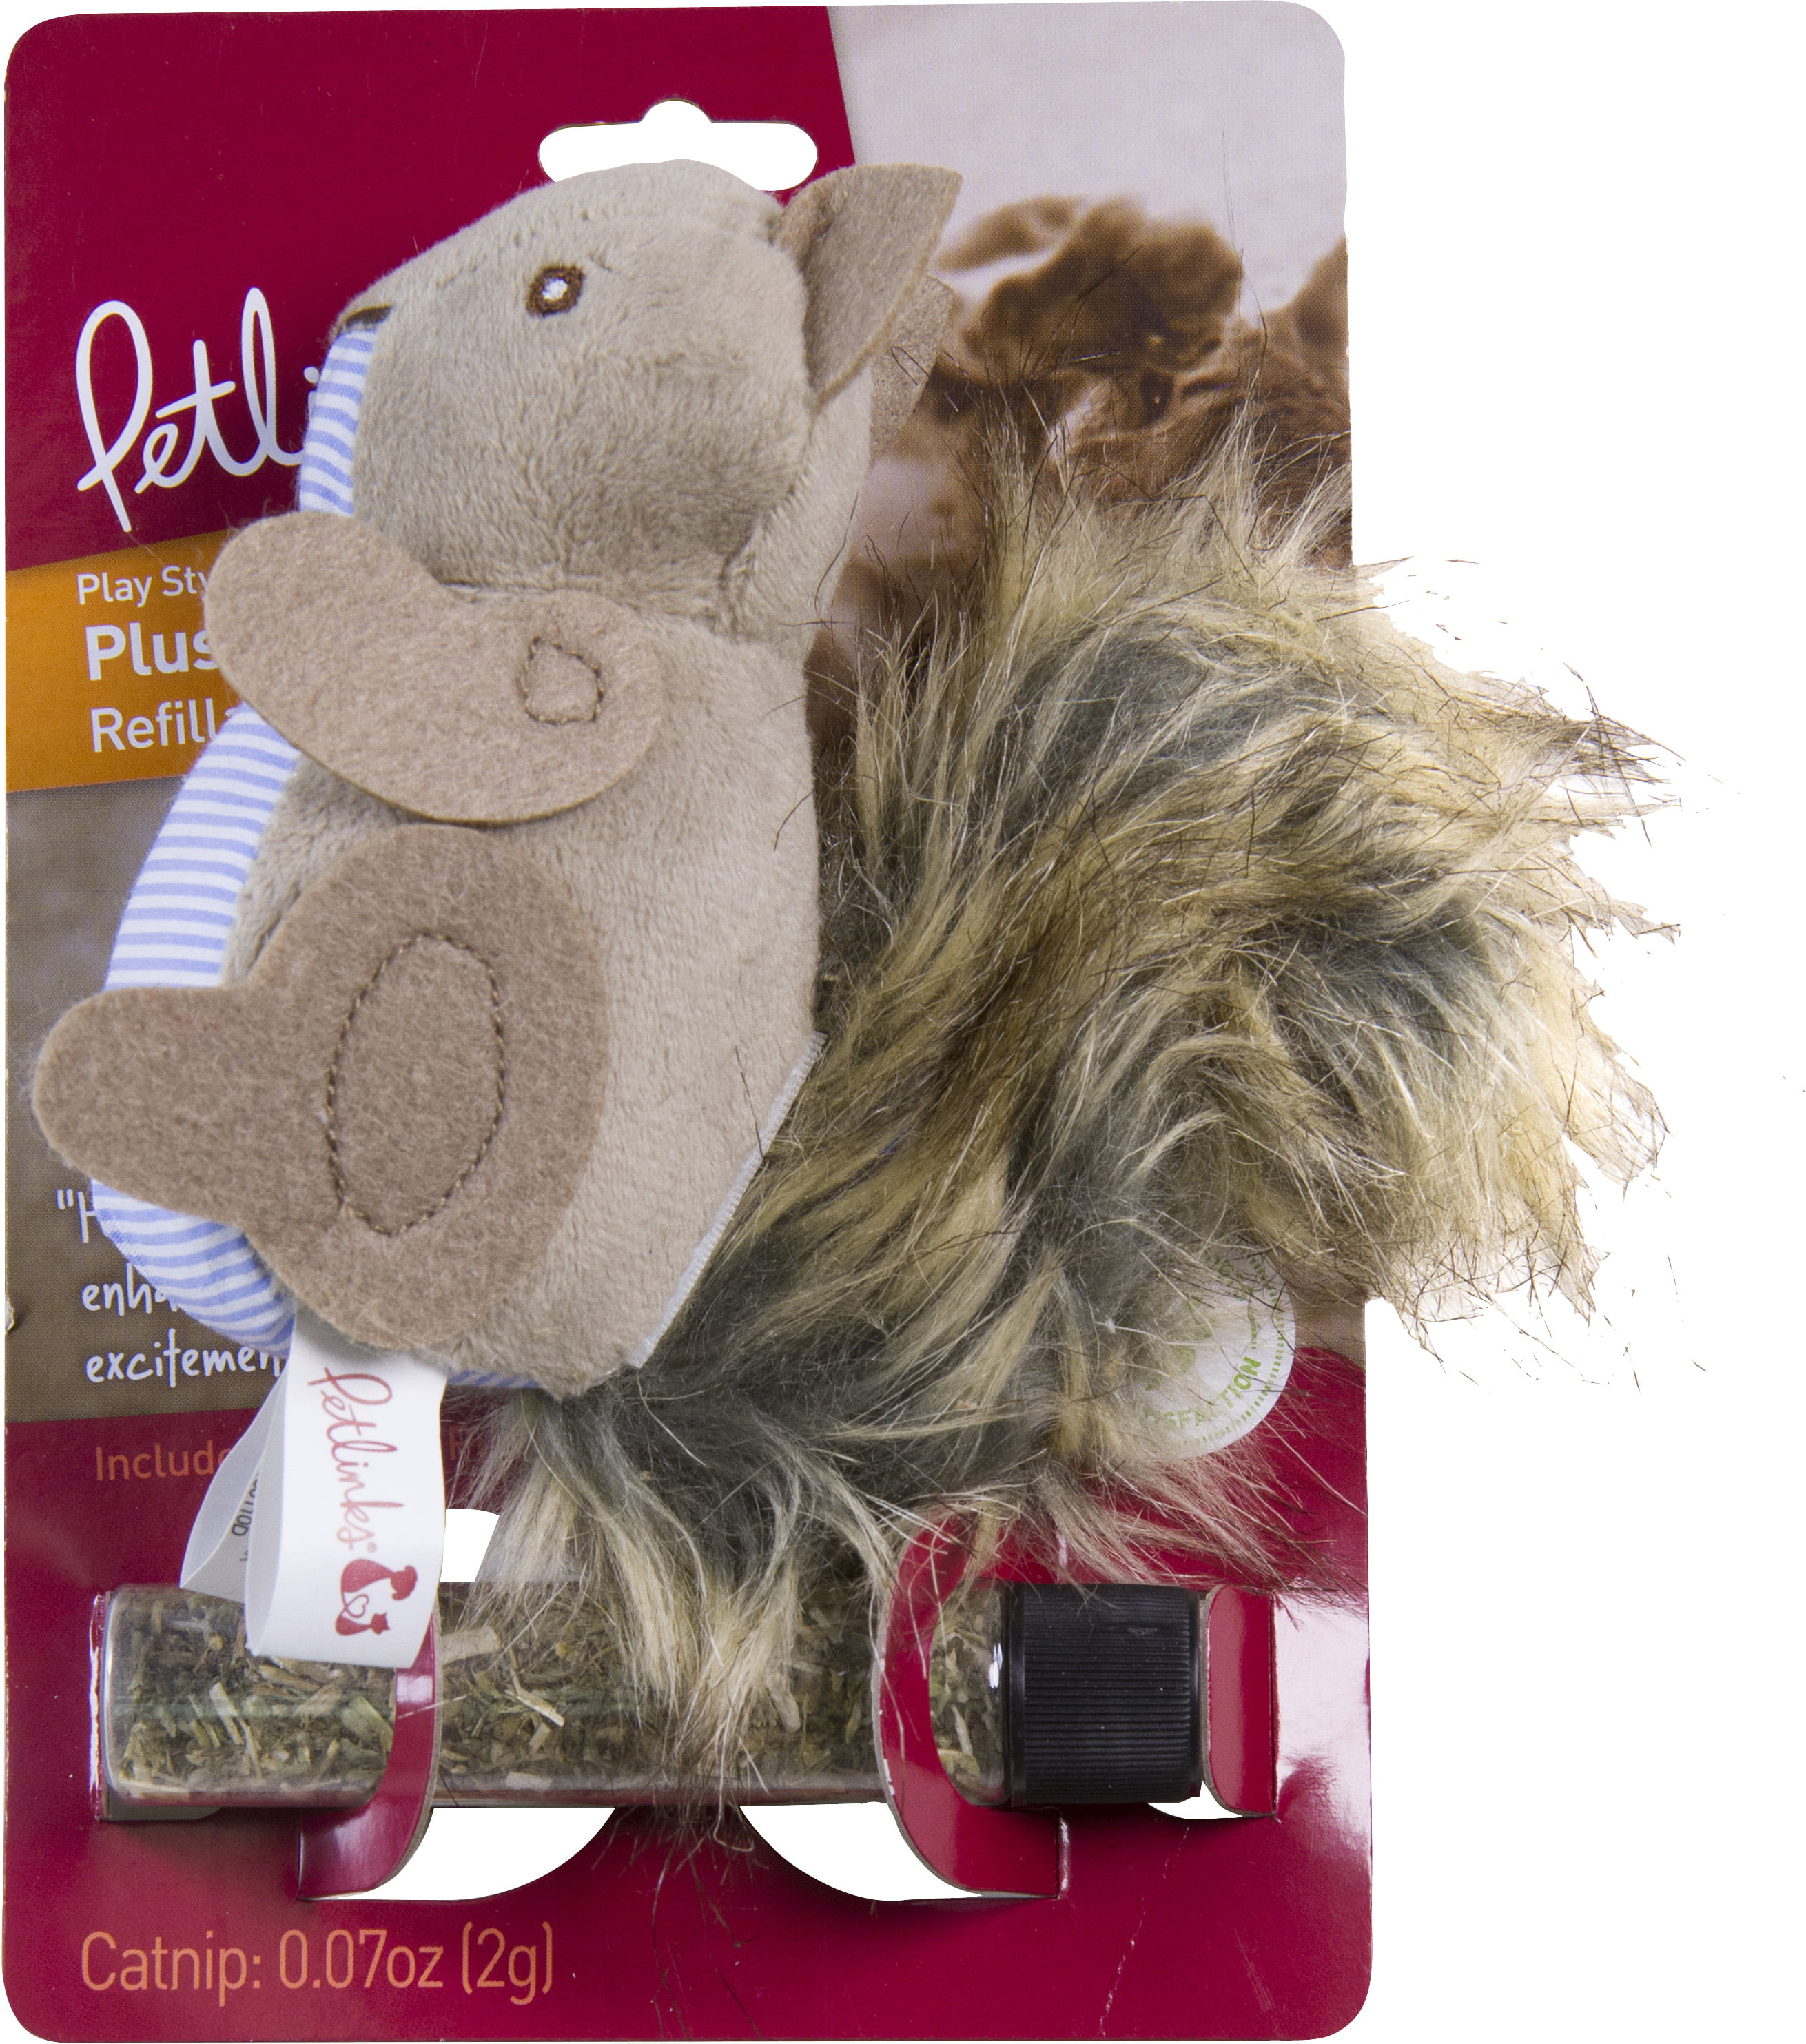 Petlinks Plush Player Squirrel Refillable Catnip Cat Toy by Worldwise, Inc